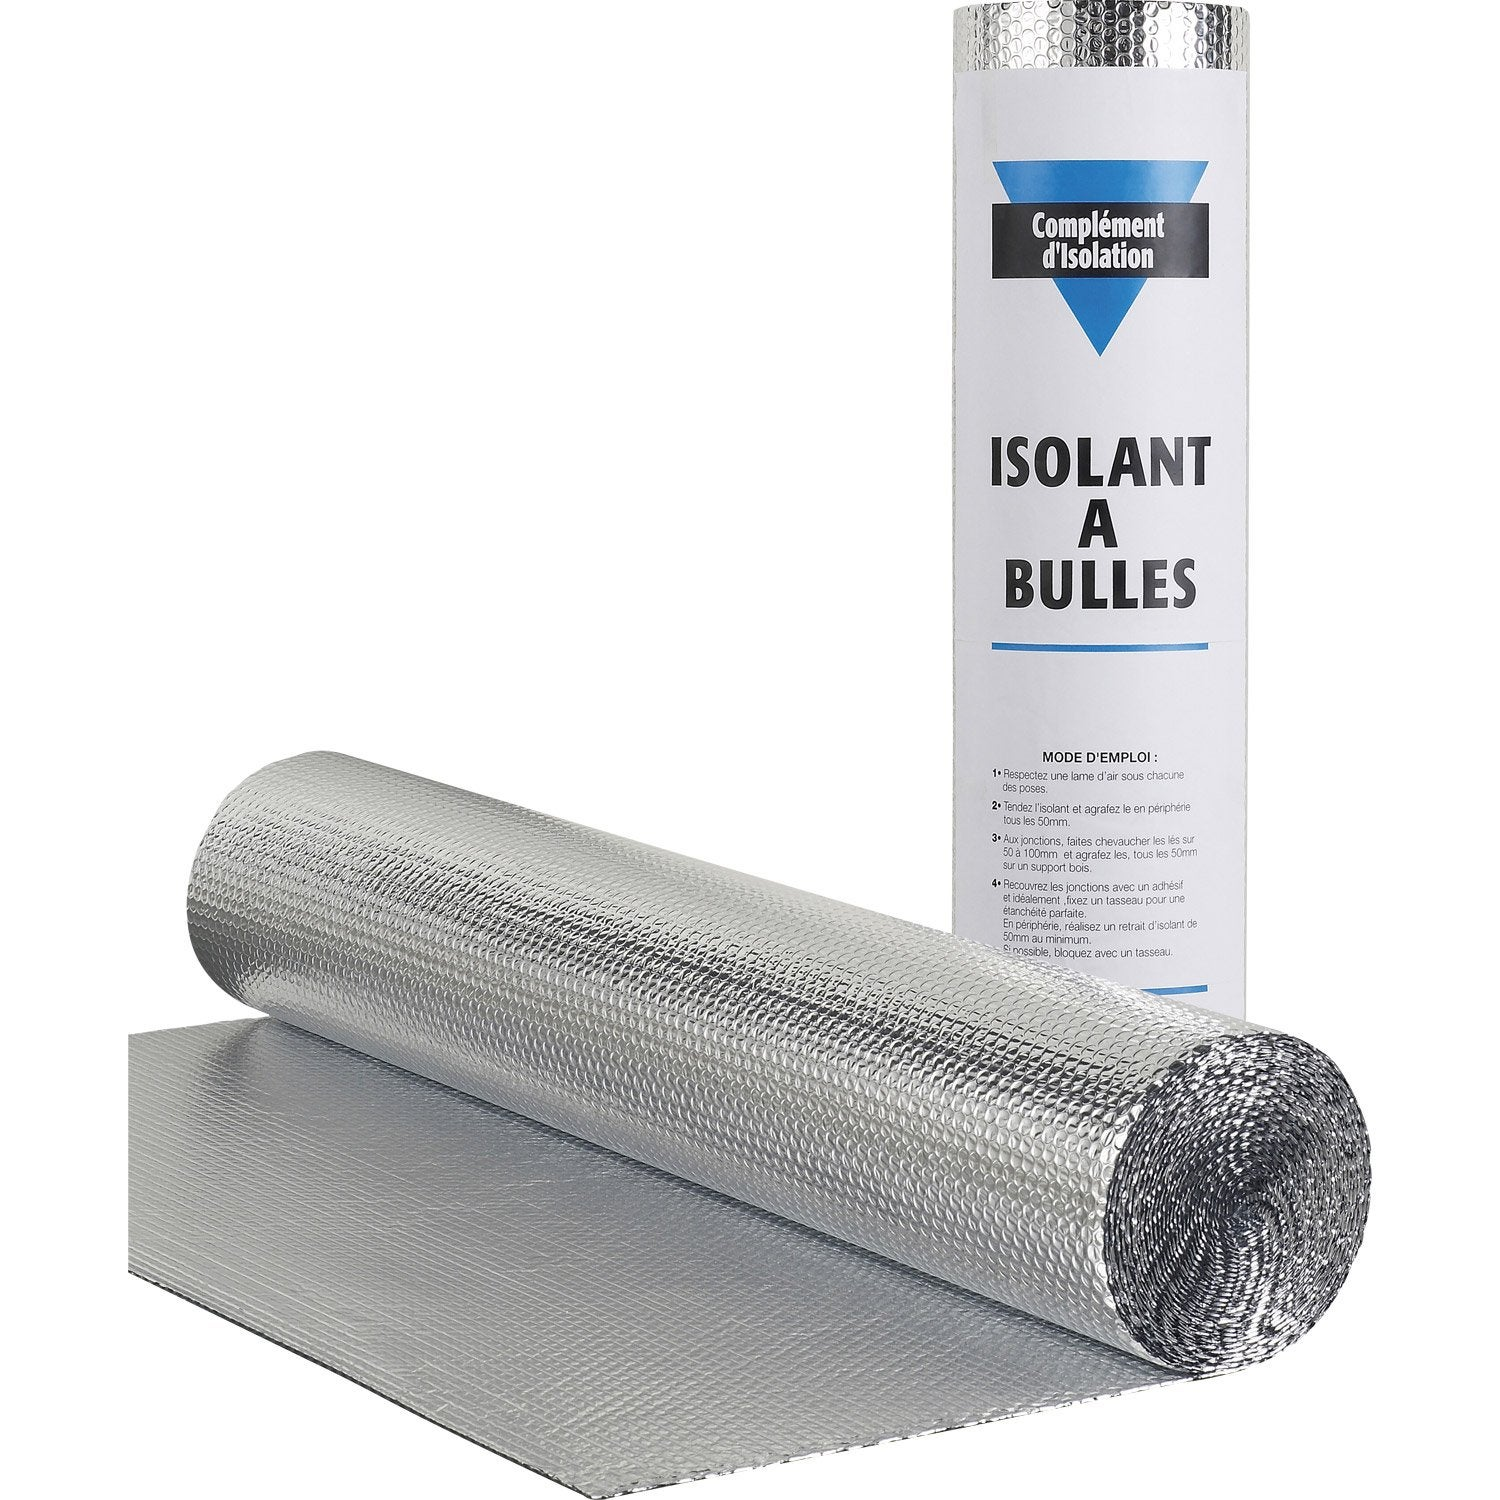 Rouleau isolant mince bulle actis 10 x 1 5 m ep 3 5 for Pose isolant mince sous chevrons